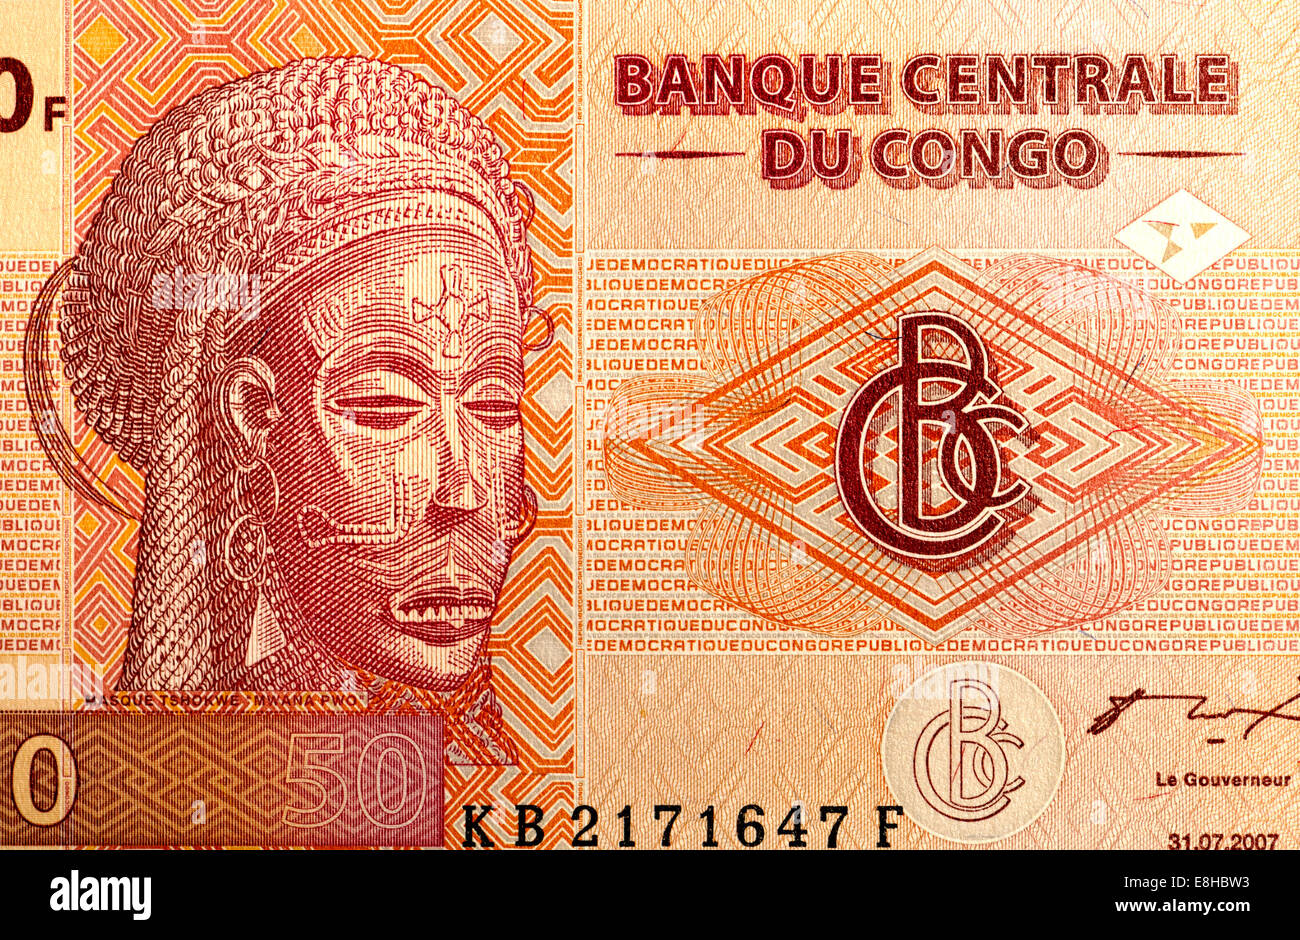 Detail from Congo 50F banknote showing Tshokwe mask 'Mwana Pwo' - Stock Image